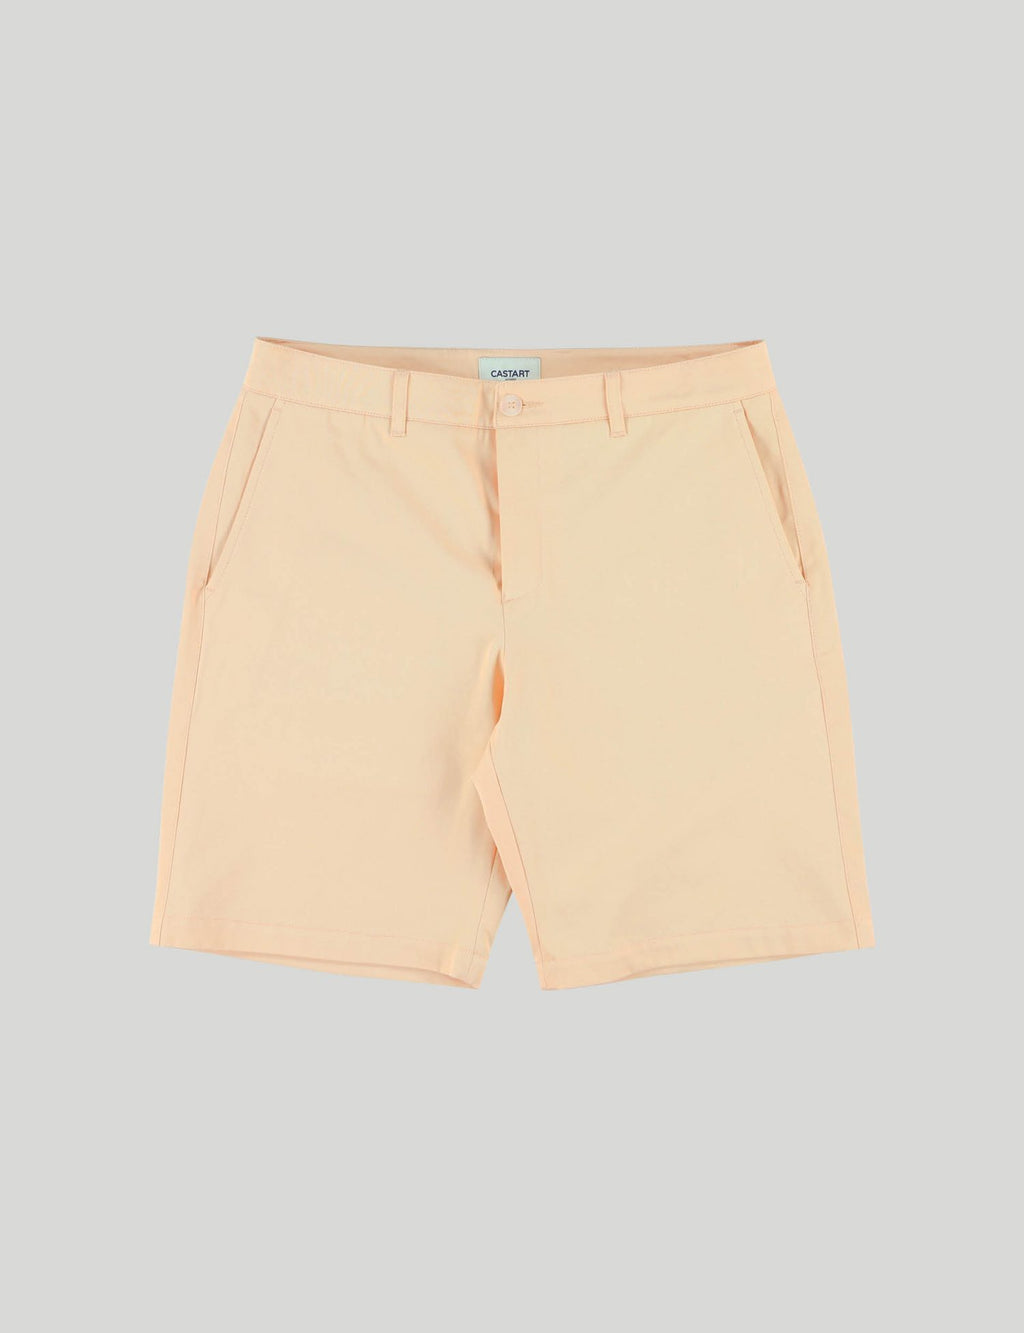 Castart angel wing shorts apricot